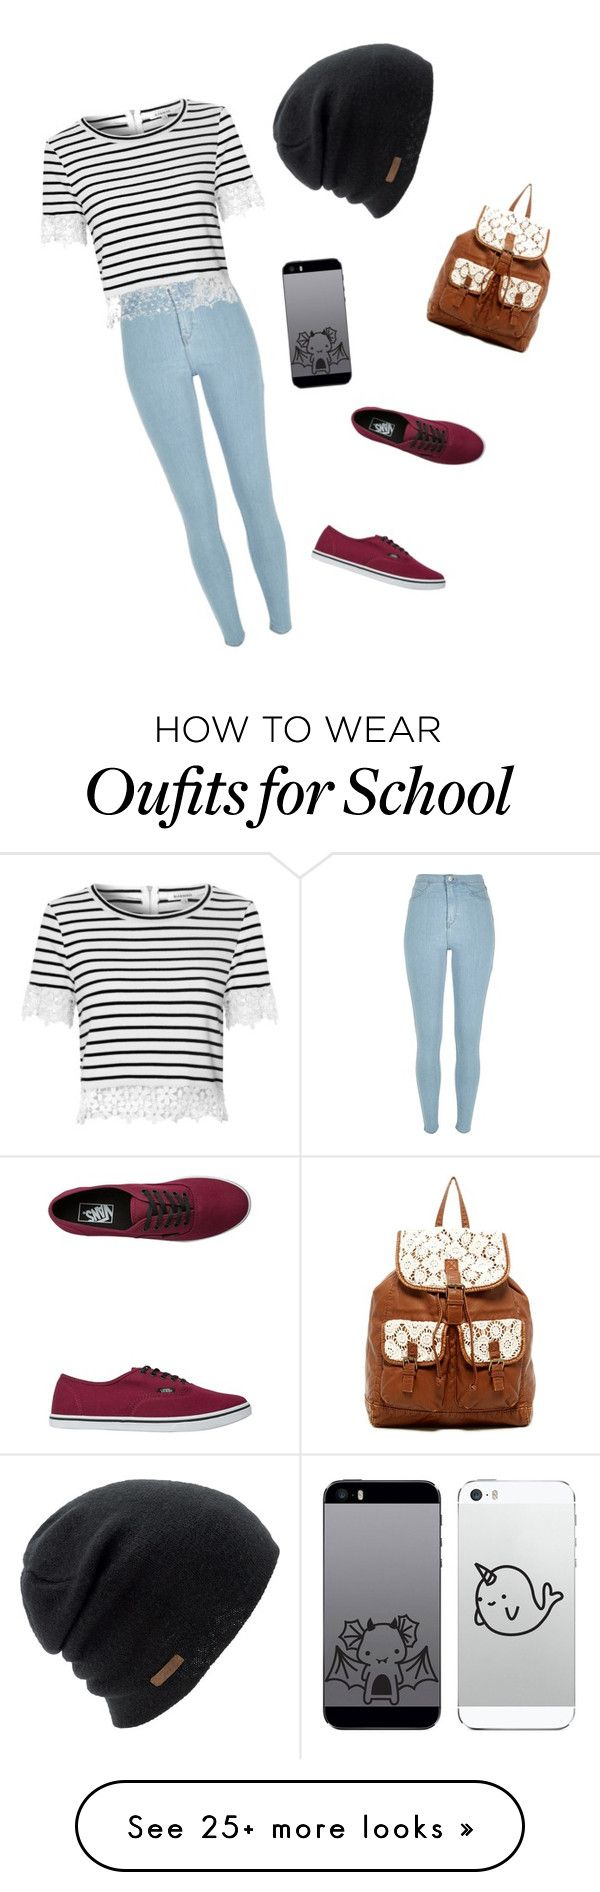 """""""School x3"""" by kylieraine on Polyvore featuring River Island, Vans, Glamorous, Coal and T-shirt & Jeans"""